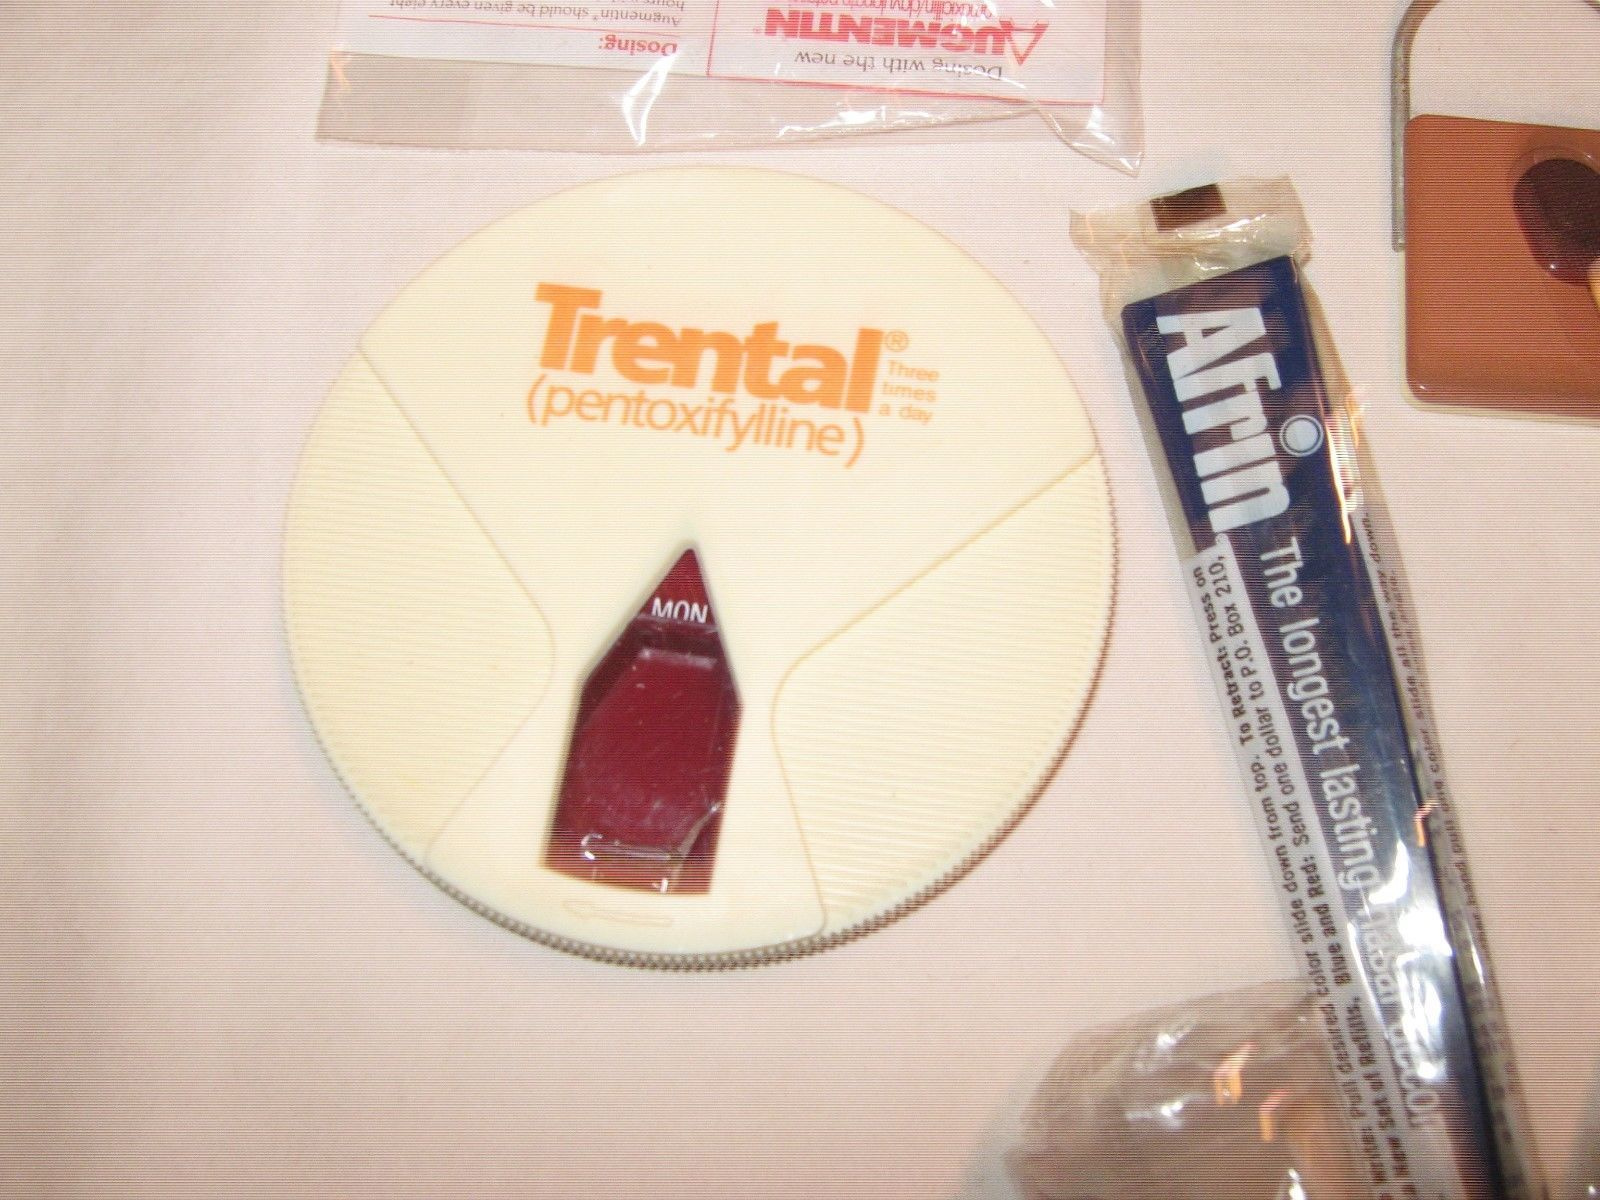 Rx, Pharmacy Promotional Items, Mixed Lot , Advertisment Promos image 10